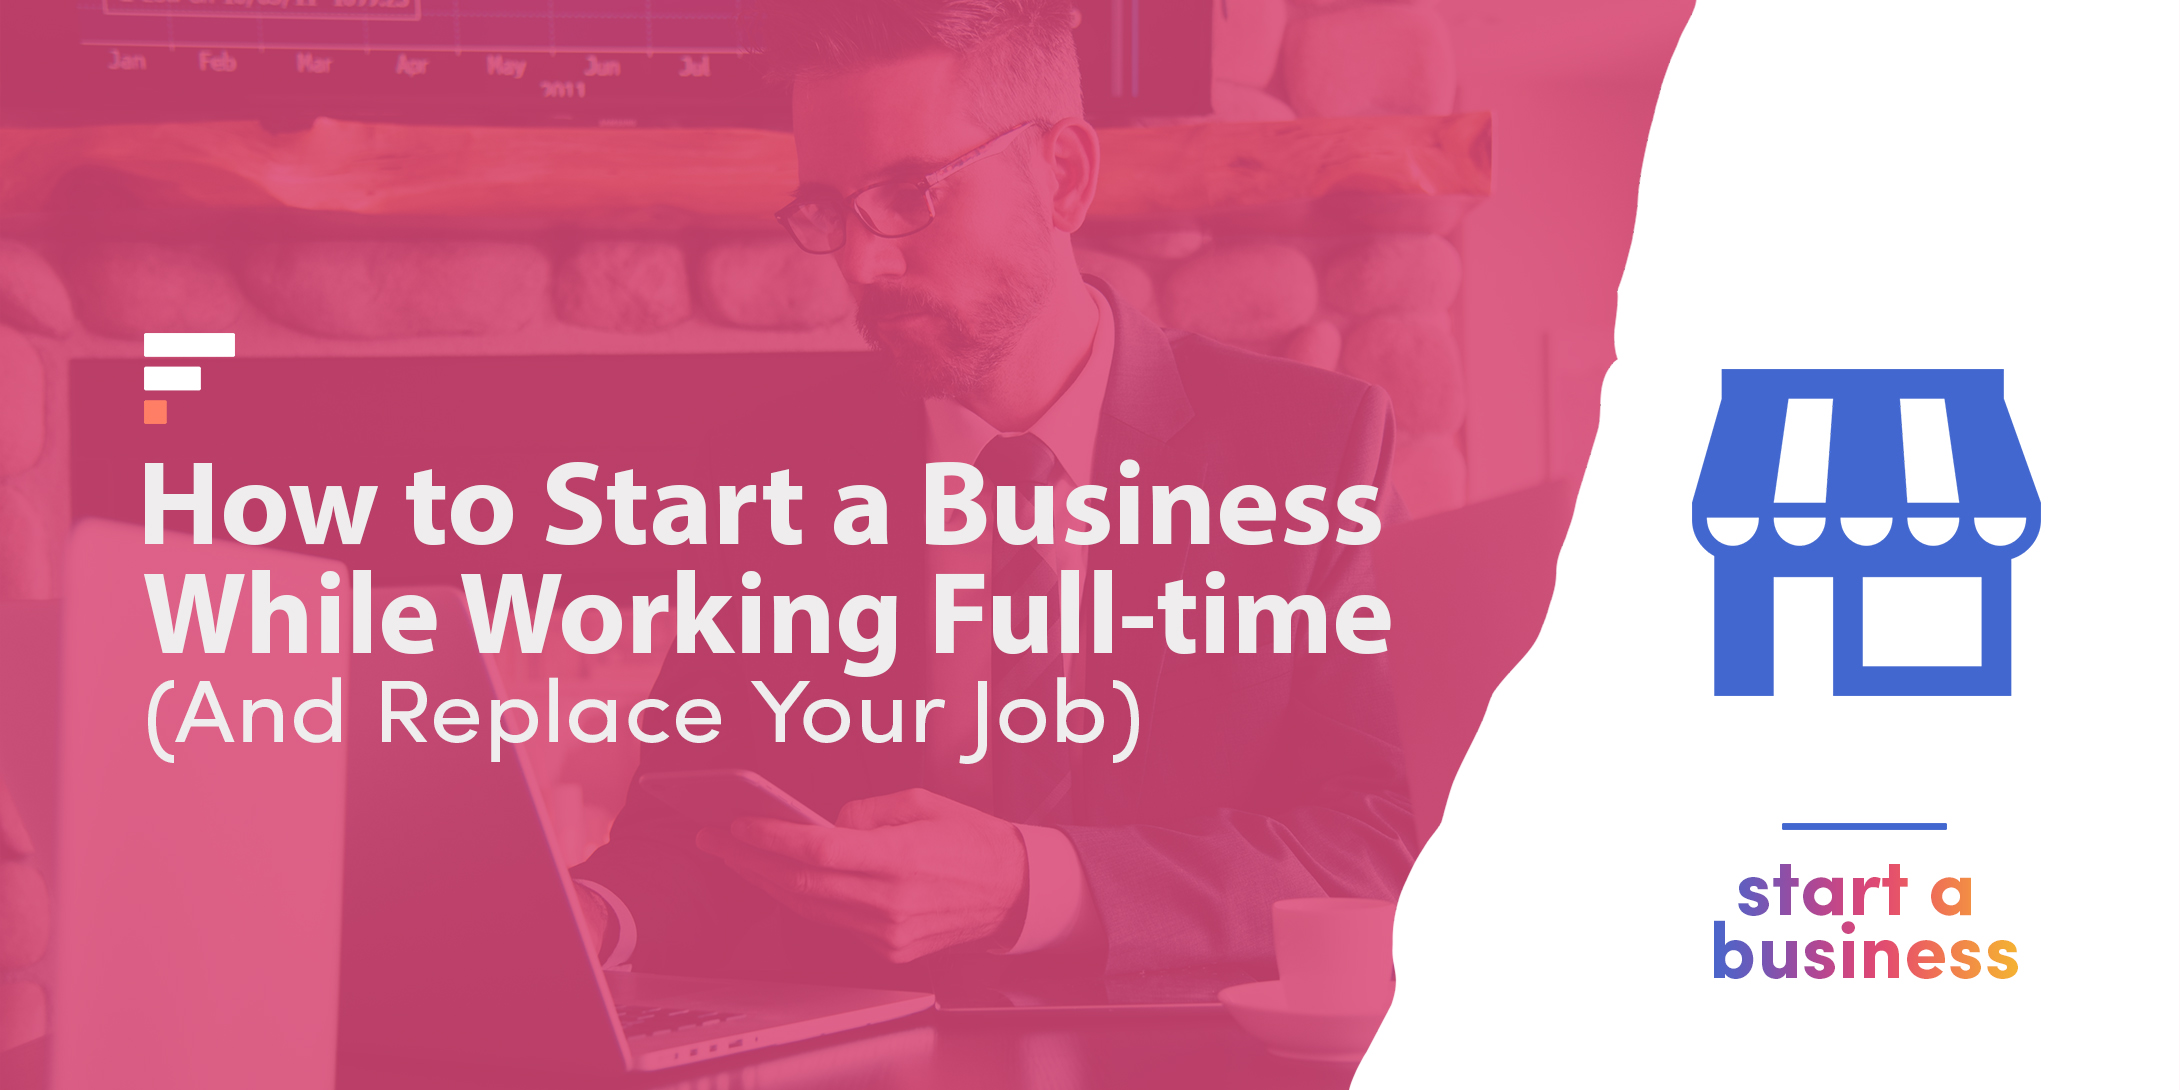 How to Start a Business While Working Full-time (And Replace Your Job)